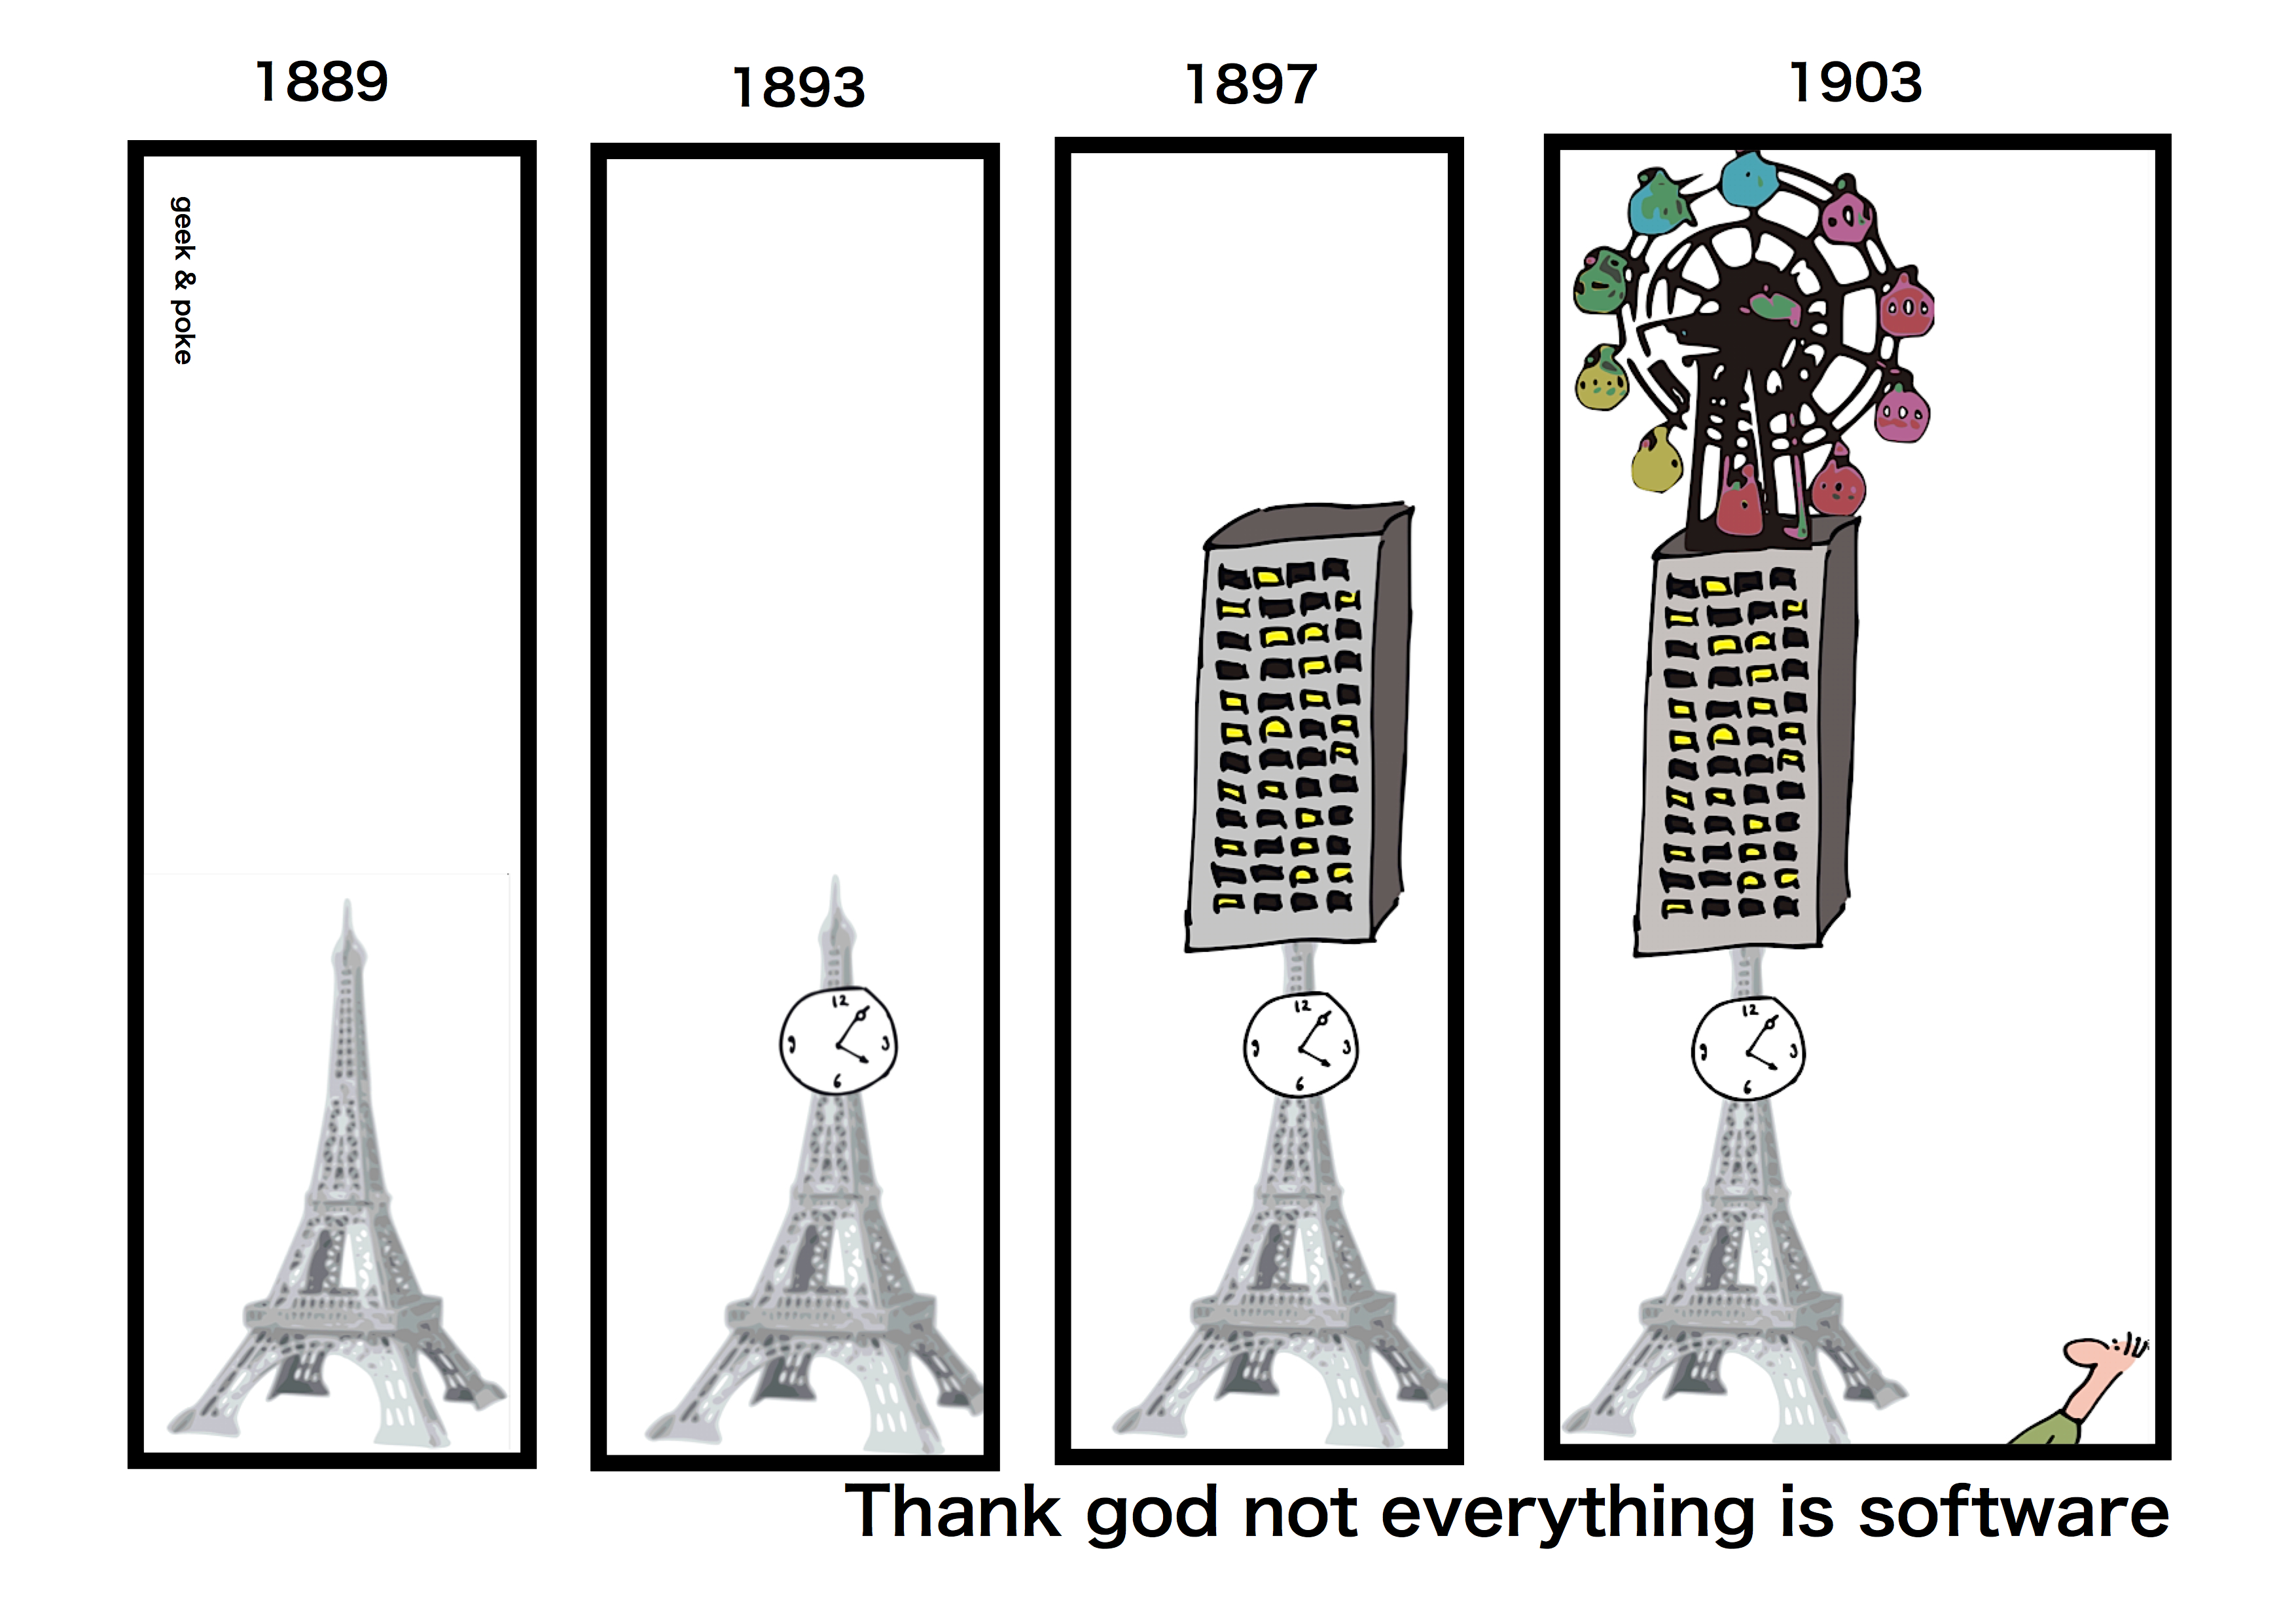 Geek & Poke: Thank god not everything is software